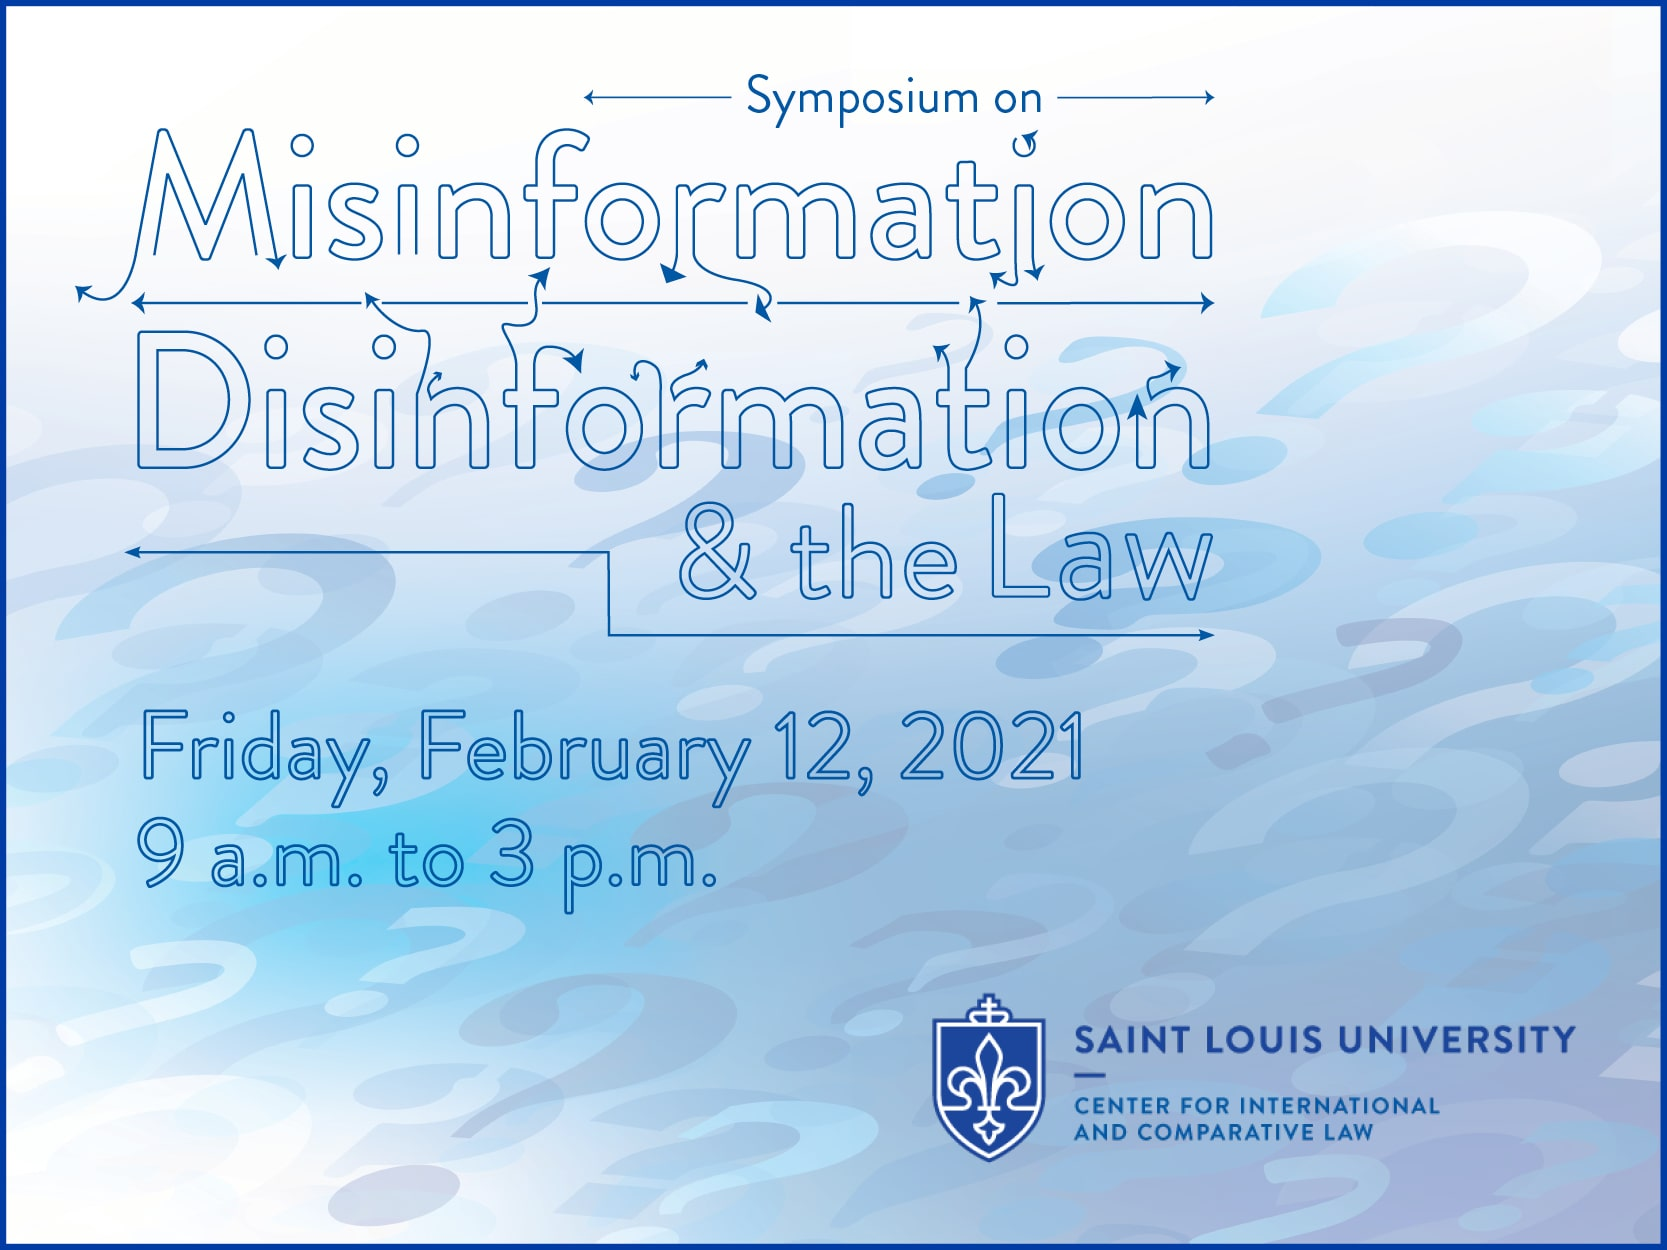 Symposium on Misinformation/Disinformation and the Law. Friday, February 12, 2021. 9 a.m. to 3 p.m.